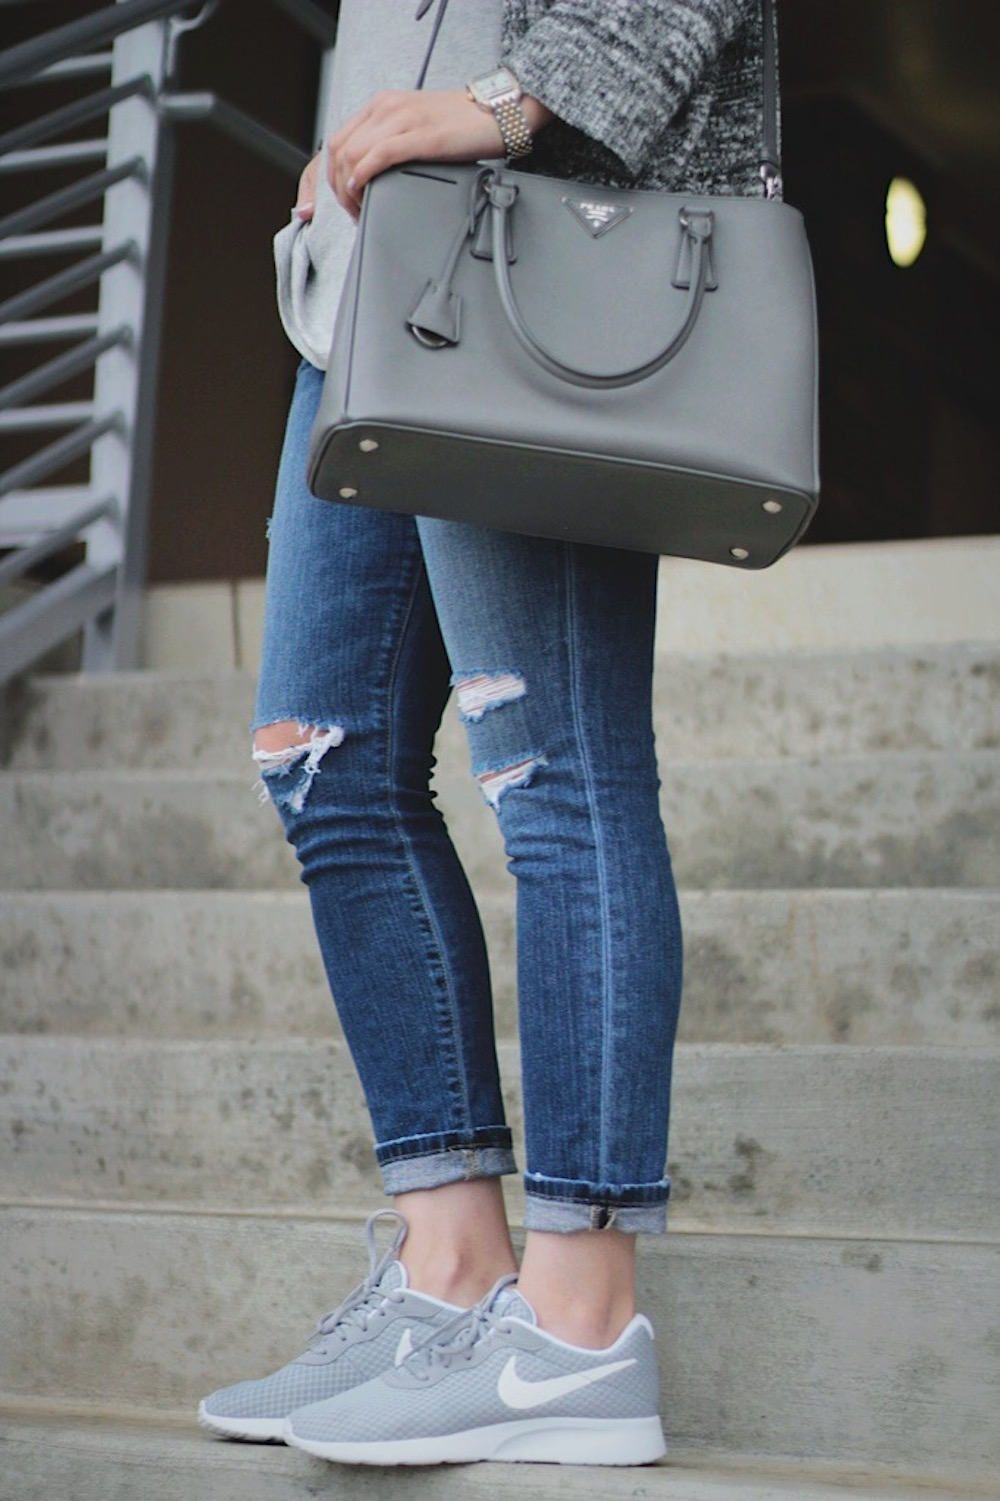 grey nikes casual style